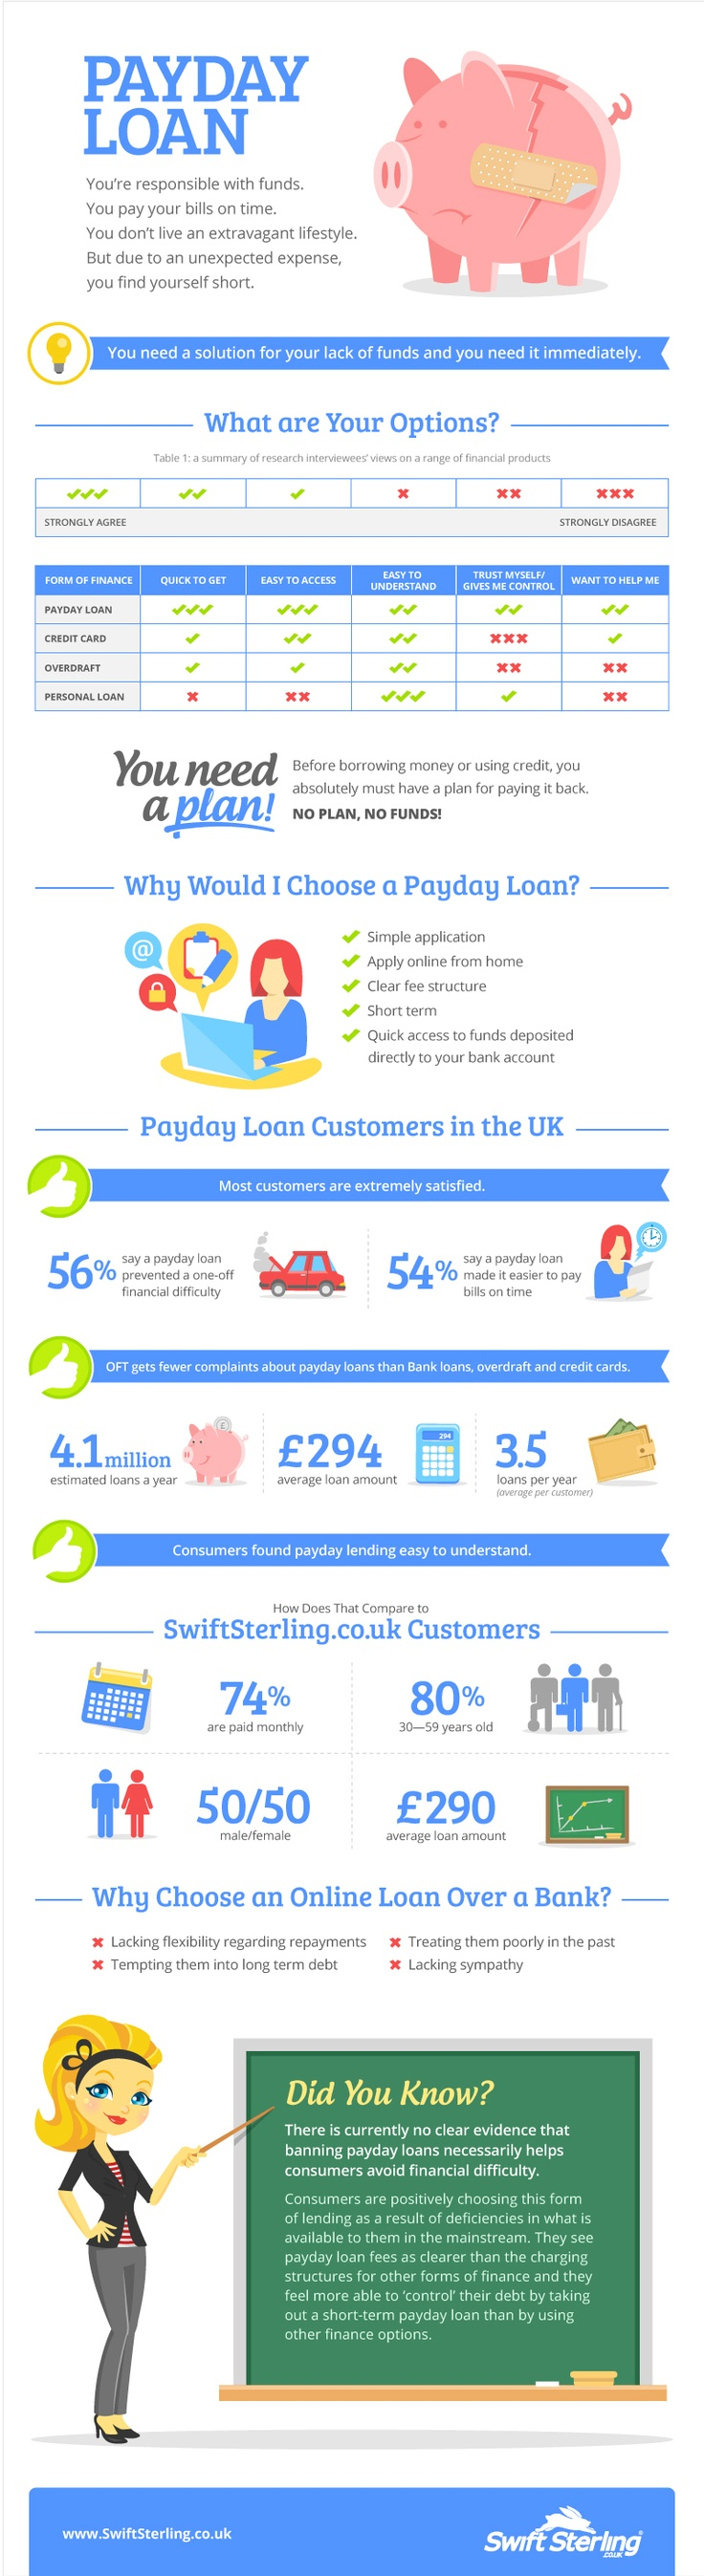 Payday Loan or Tax Refund Loan What's the Difference: http://legalloansg.jimdo.com/